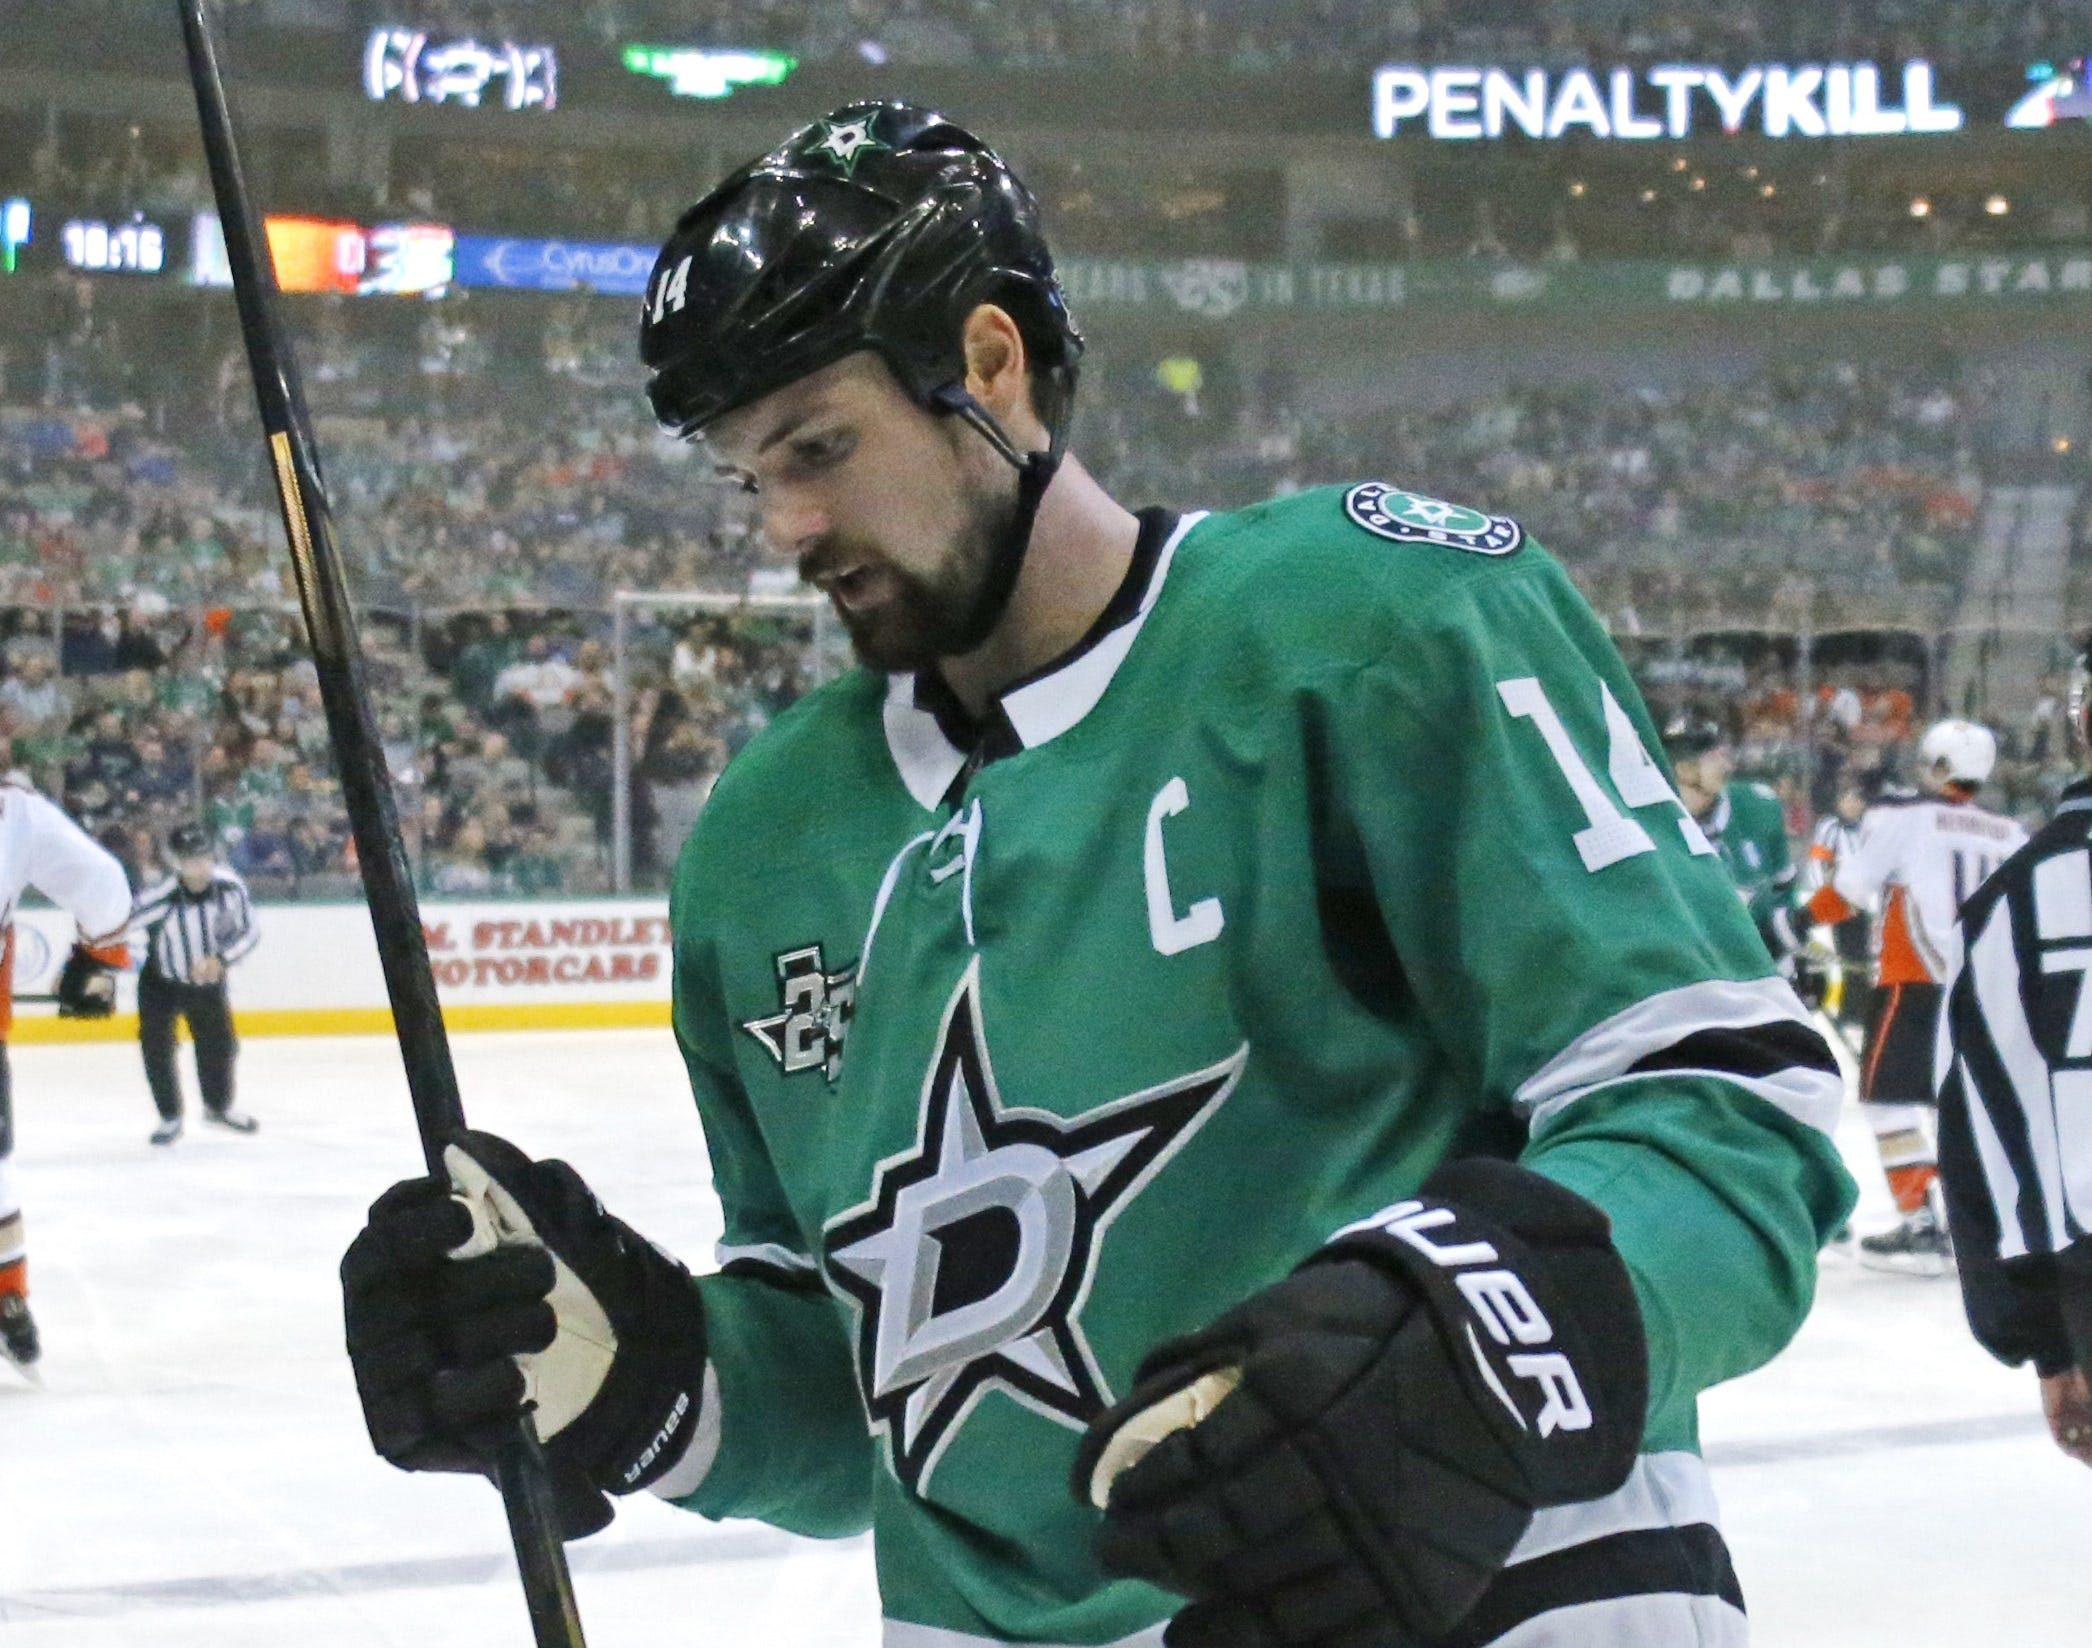 Jamie Benn hasn't lived up to his billing this season, but here's where the captain remains important to the Stars